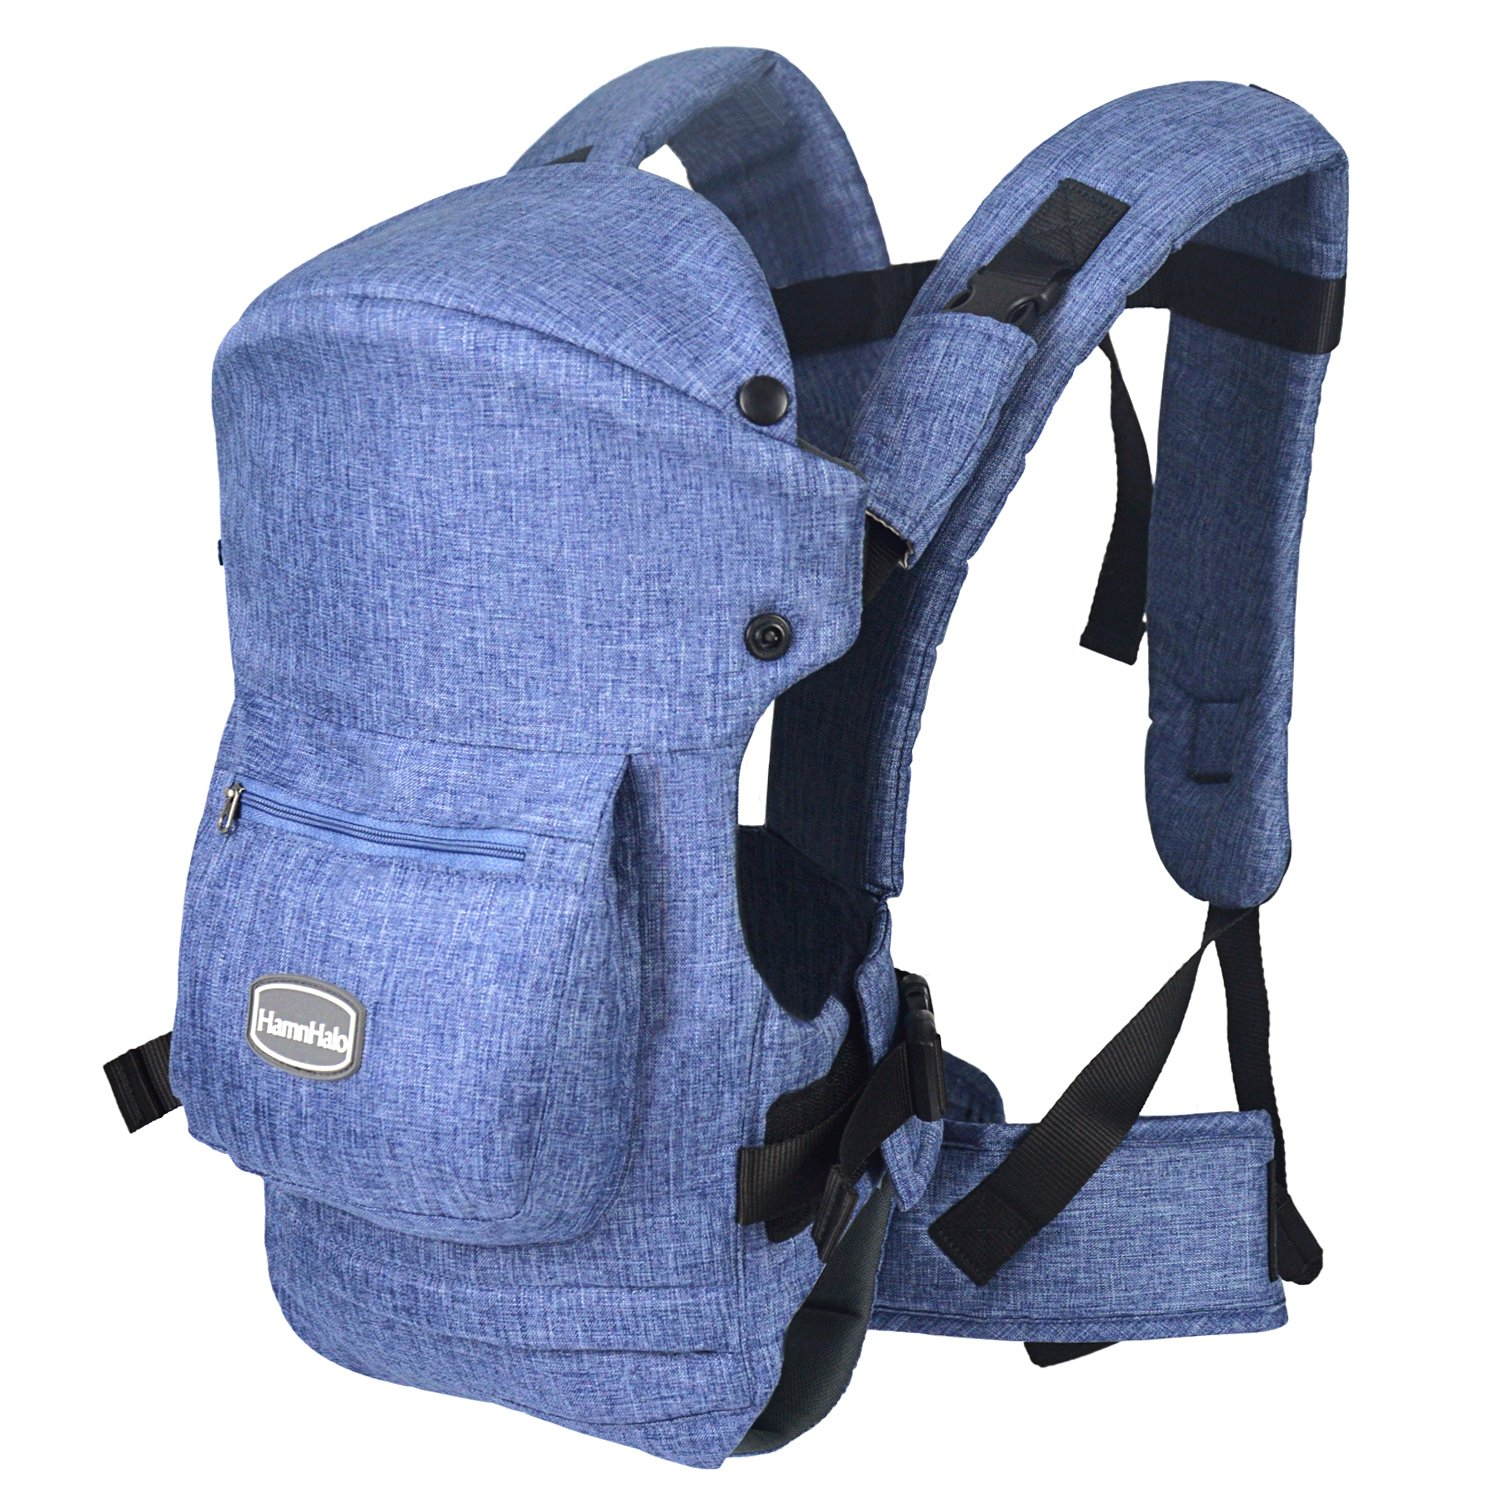 HarnnHalo Adjustable Baby Carrier with 3 Carrying Positions 007 Blue